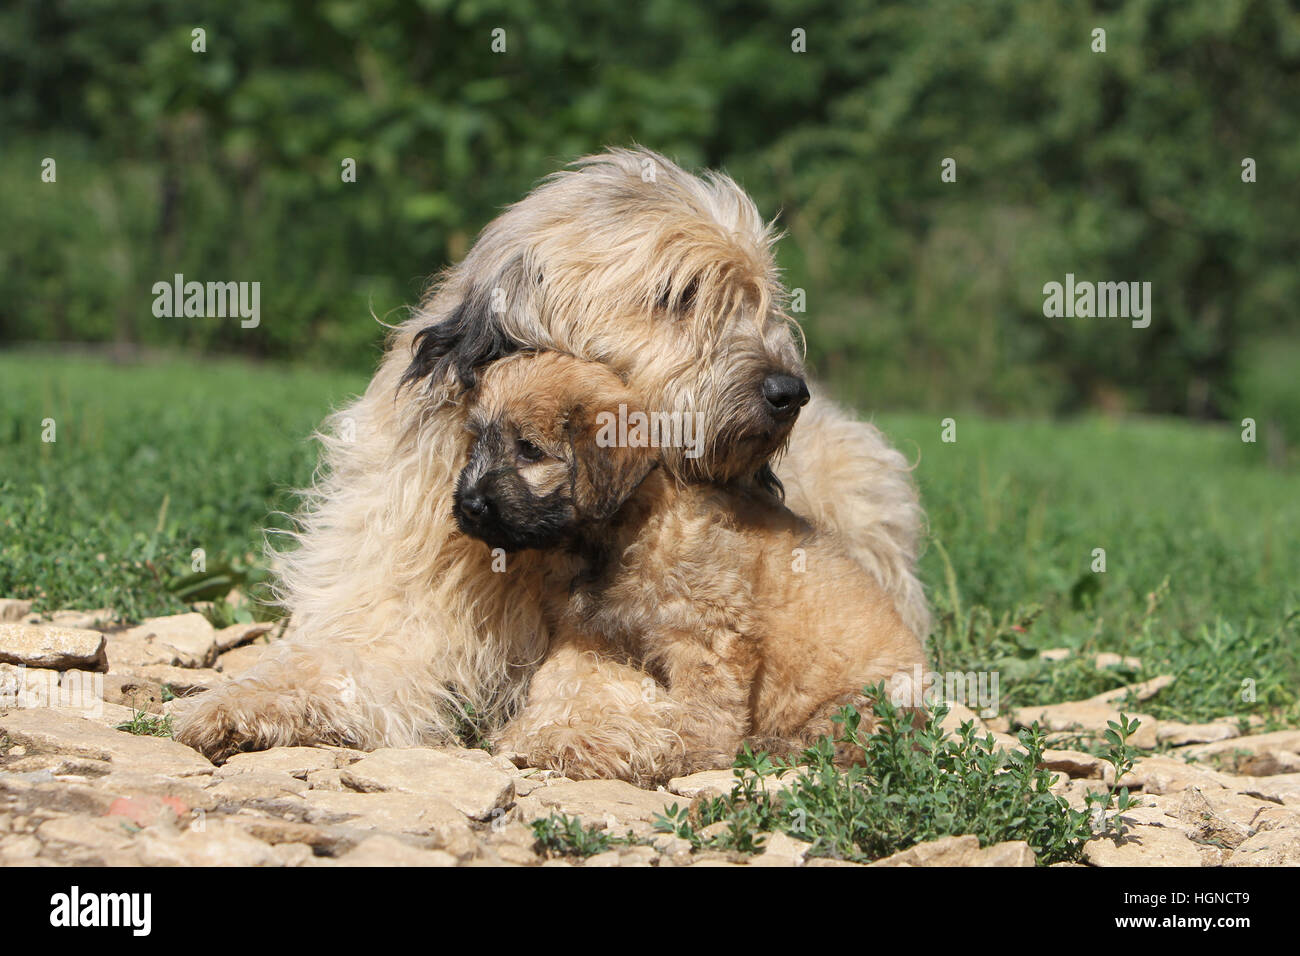 dog Catalan Sheepdog / Gos d'atura català adult and  puppy lying in a garden face - Stock Image